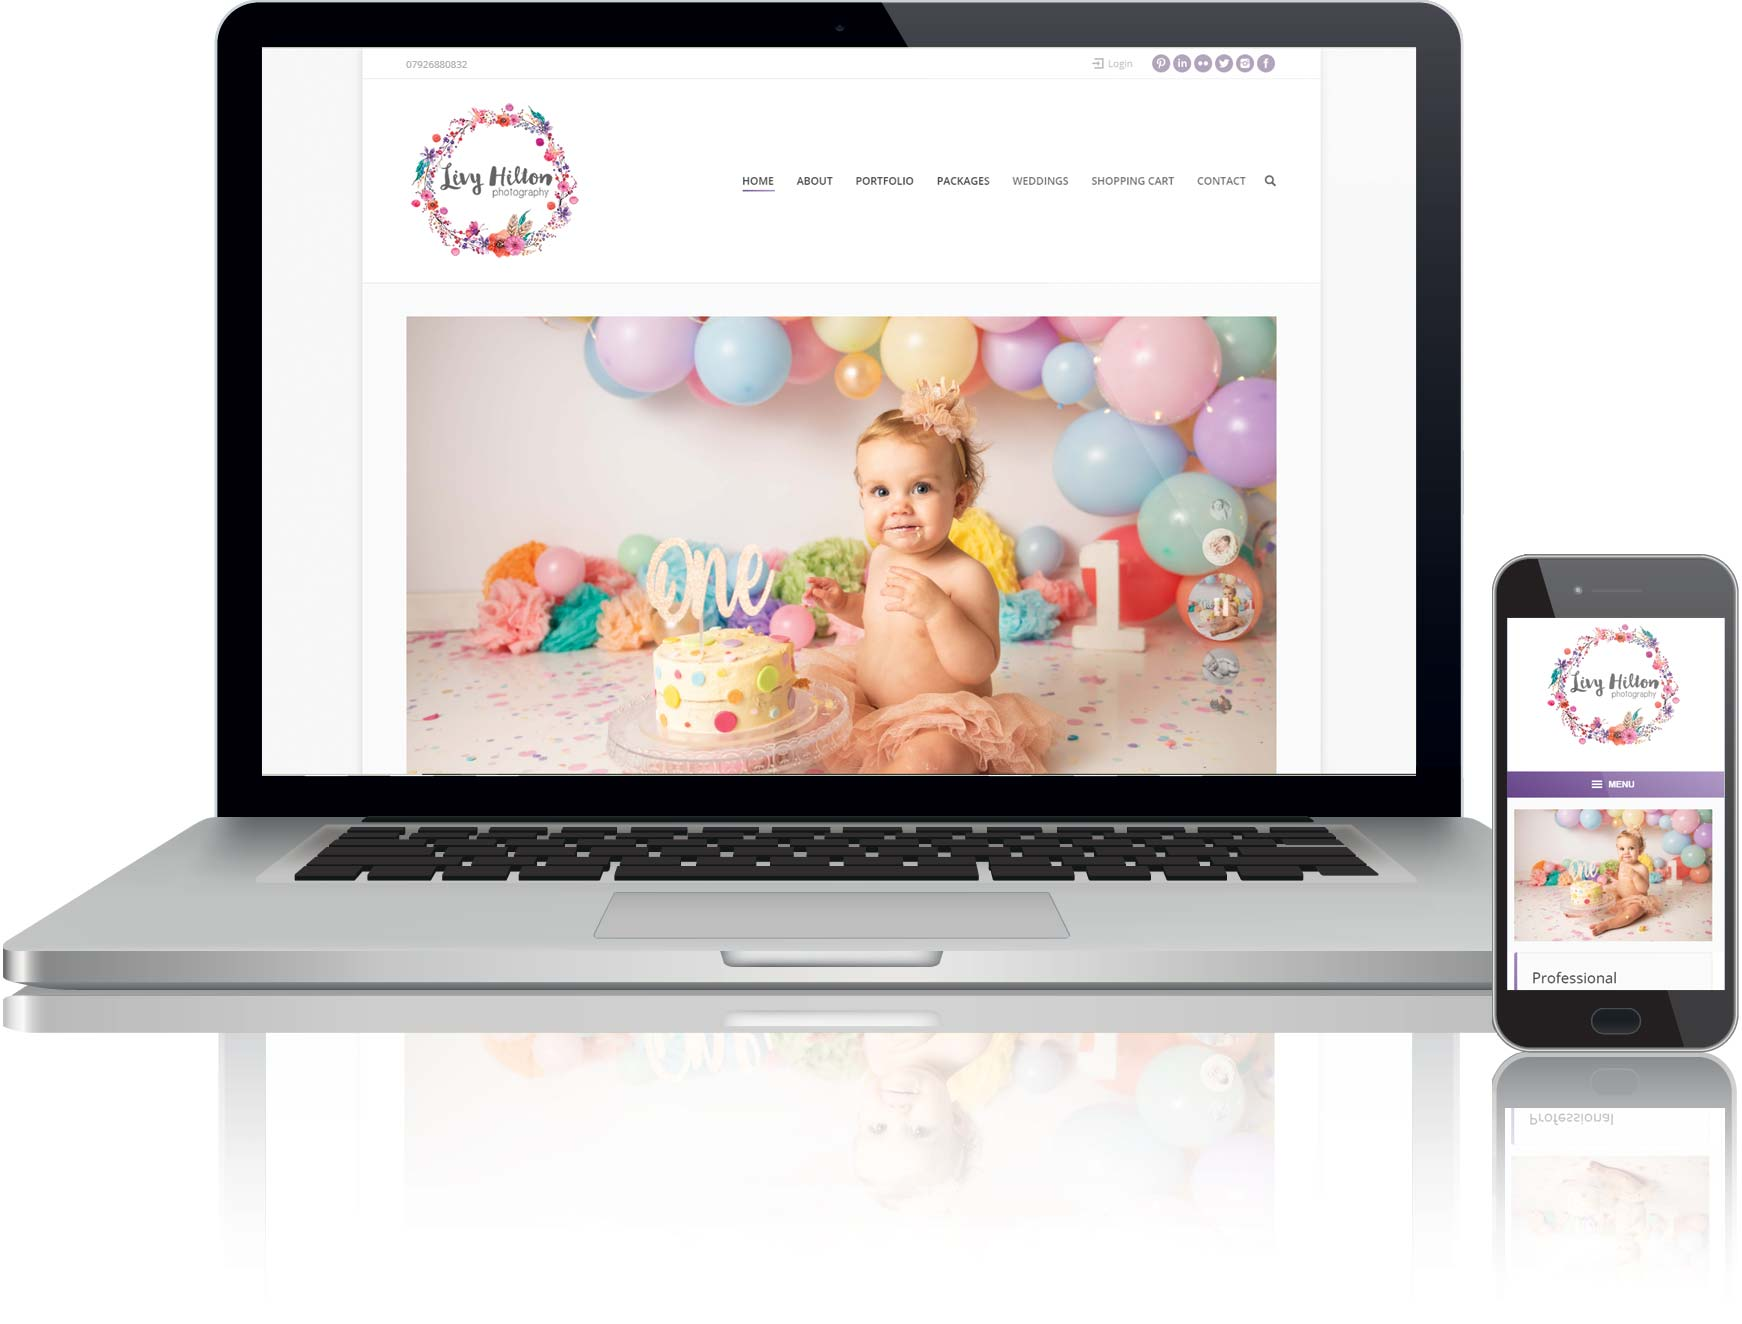 website design for online shop selling photography